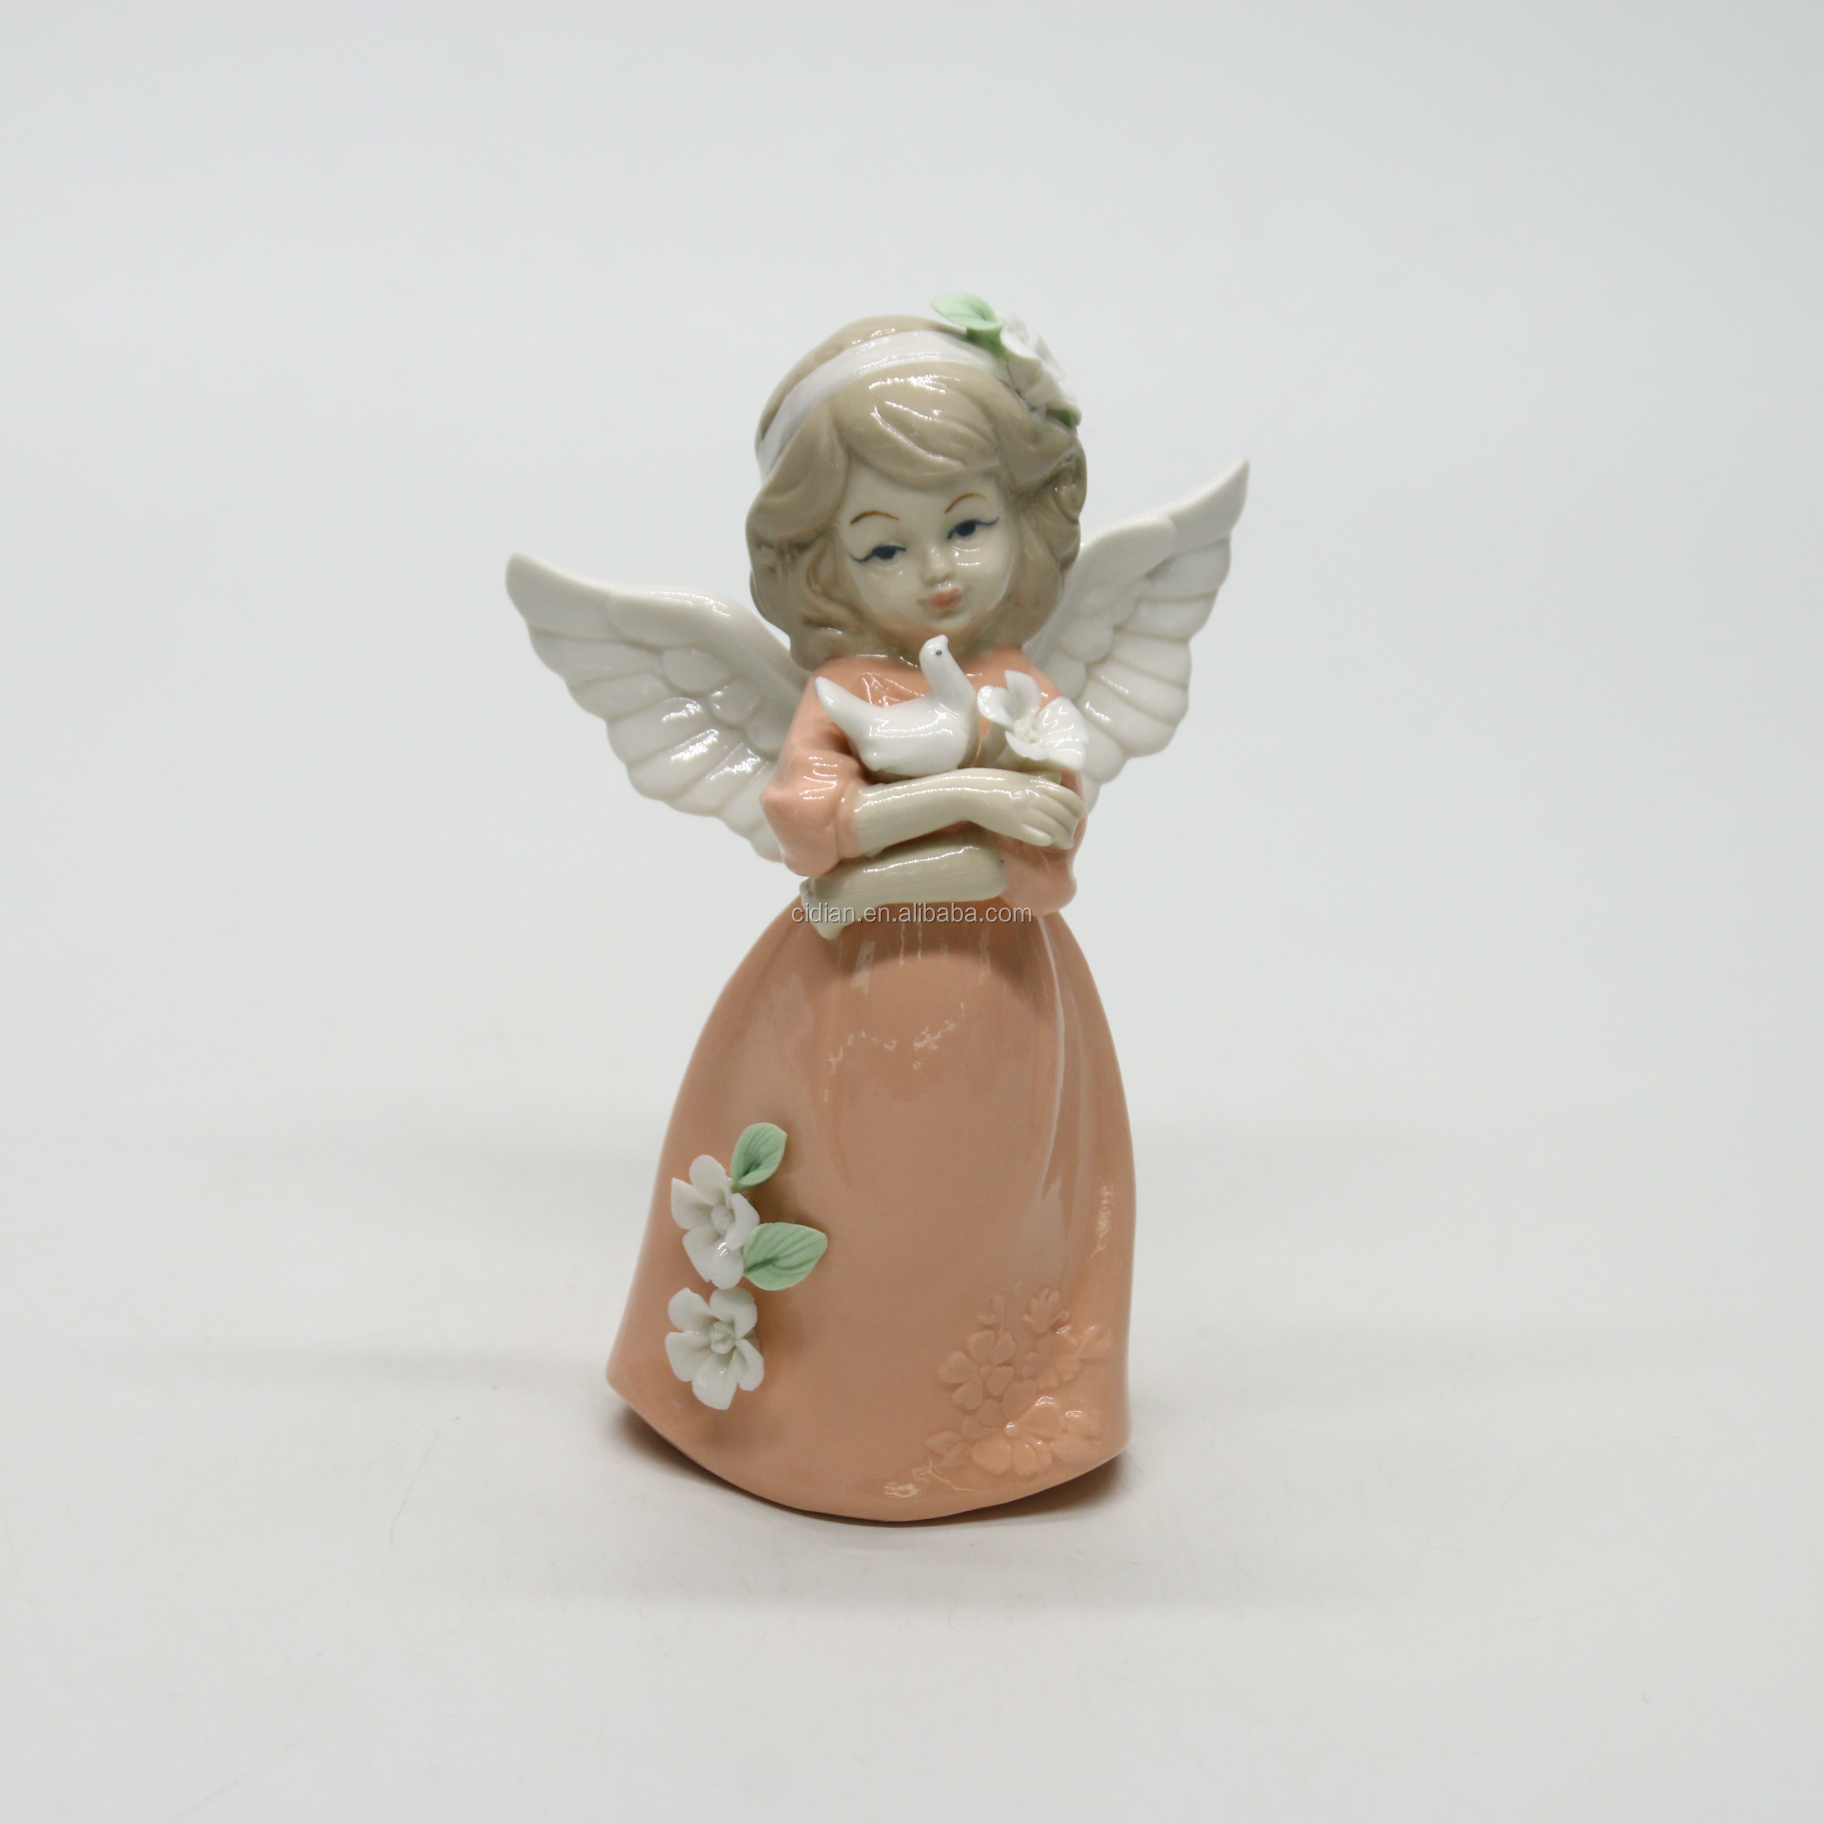 Porcelain flower fairy ceramic figurines for home decoration